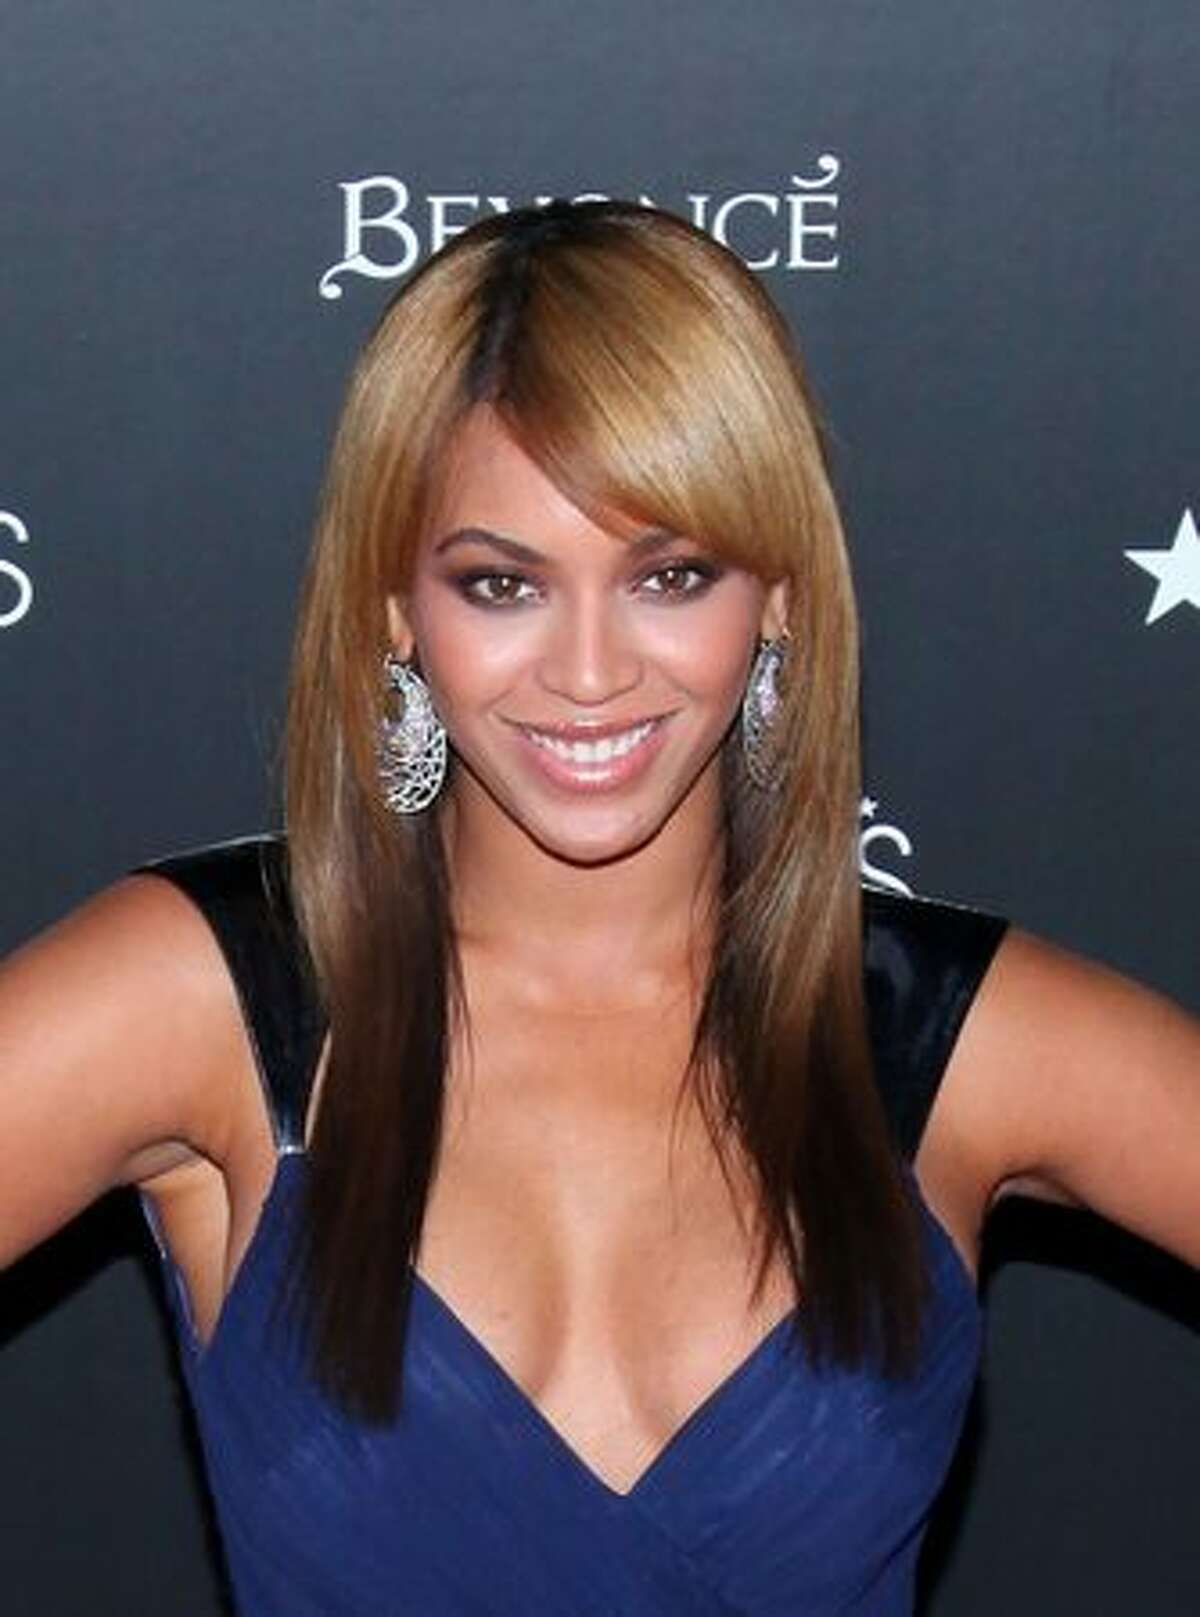 Singer and actress Beyonce Knowles attends the launch of her fragrance